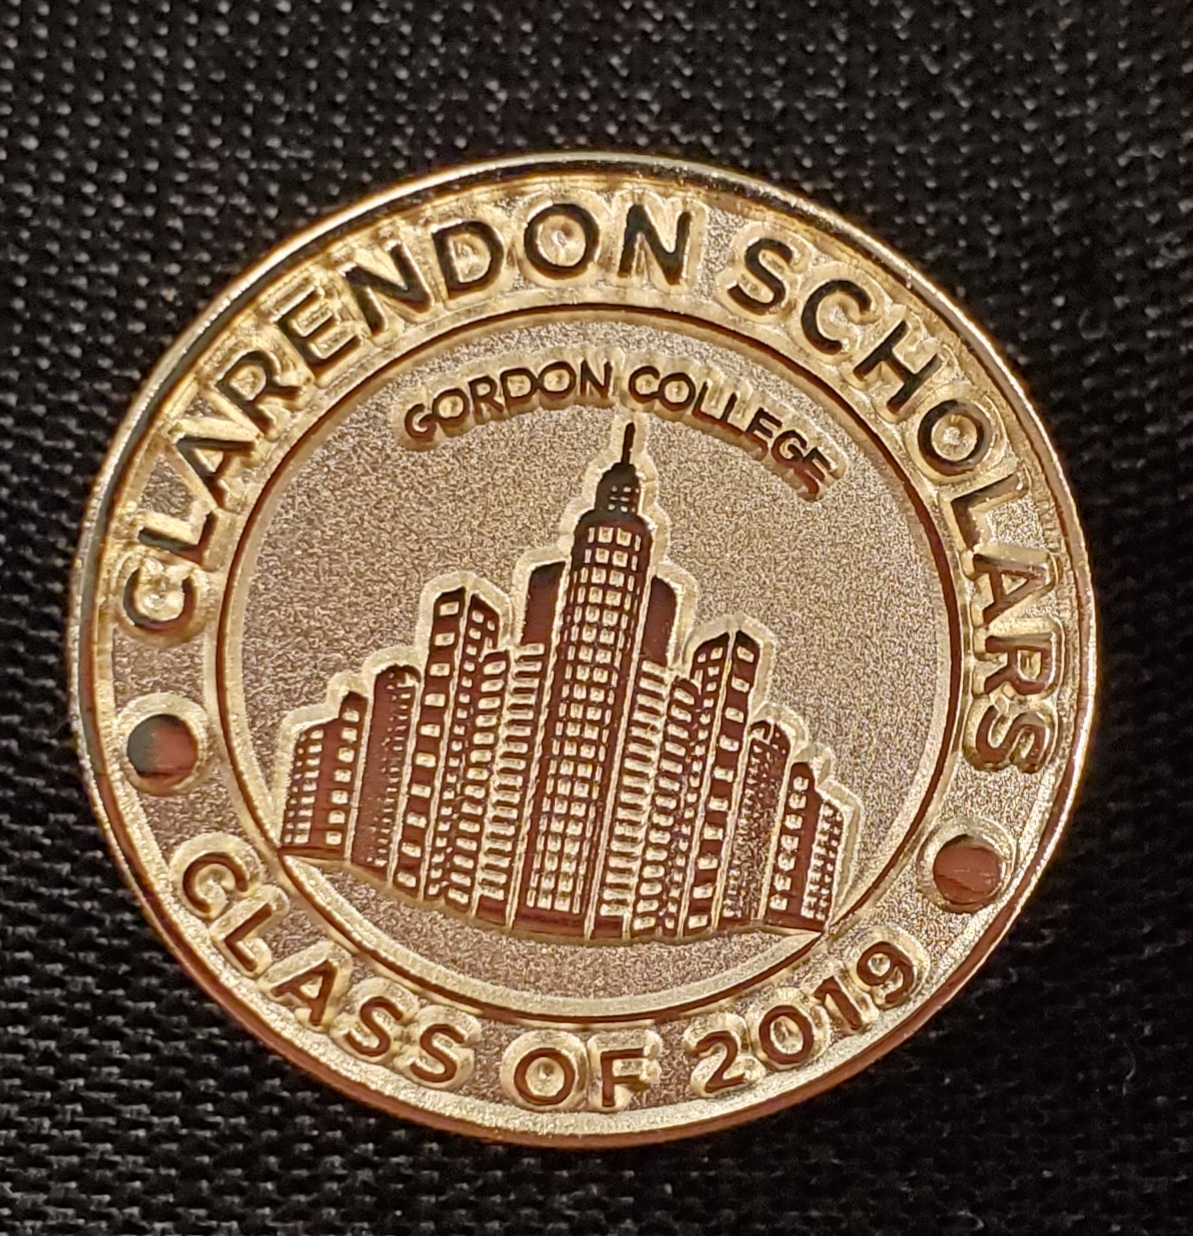 Clarendon Scholars Pin. It has a cityscape featured in the middle with